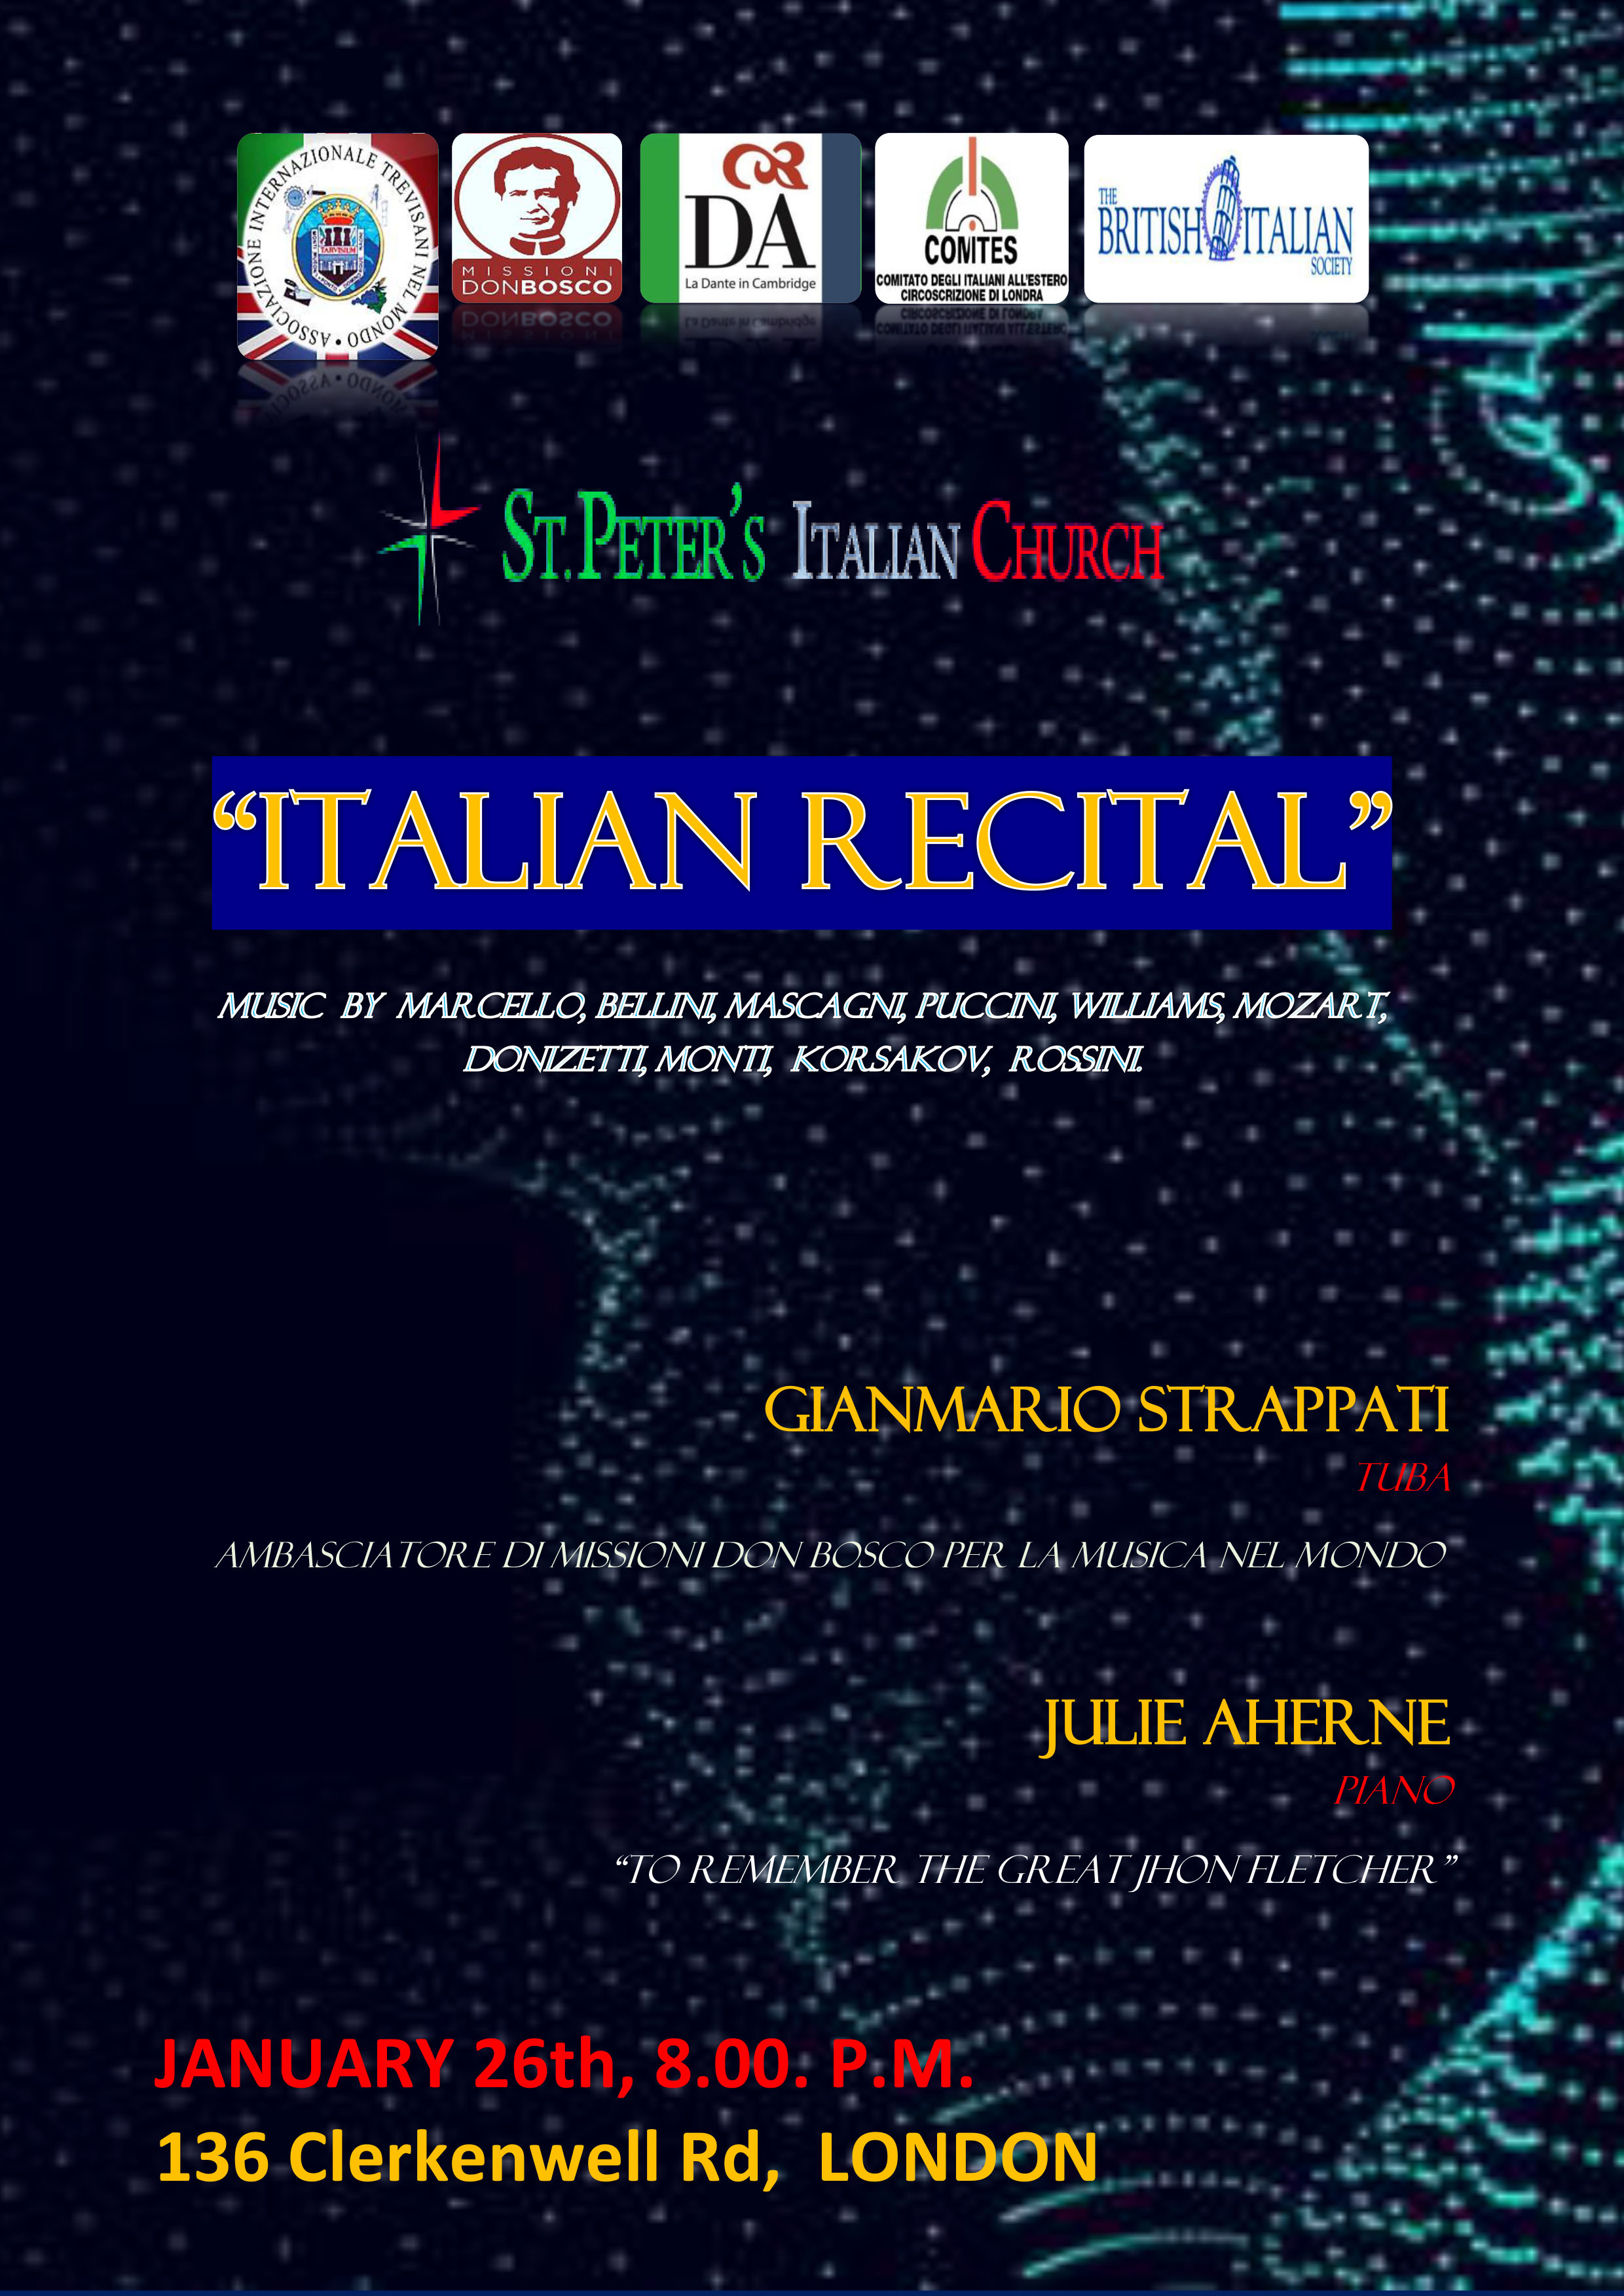 Italian Recital-St Peter's Church Clerkenwell, 26 January 2019 at 8pm